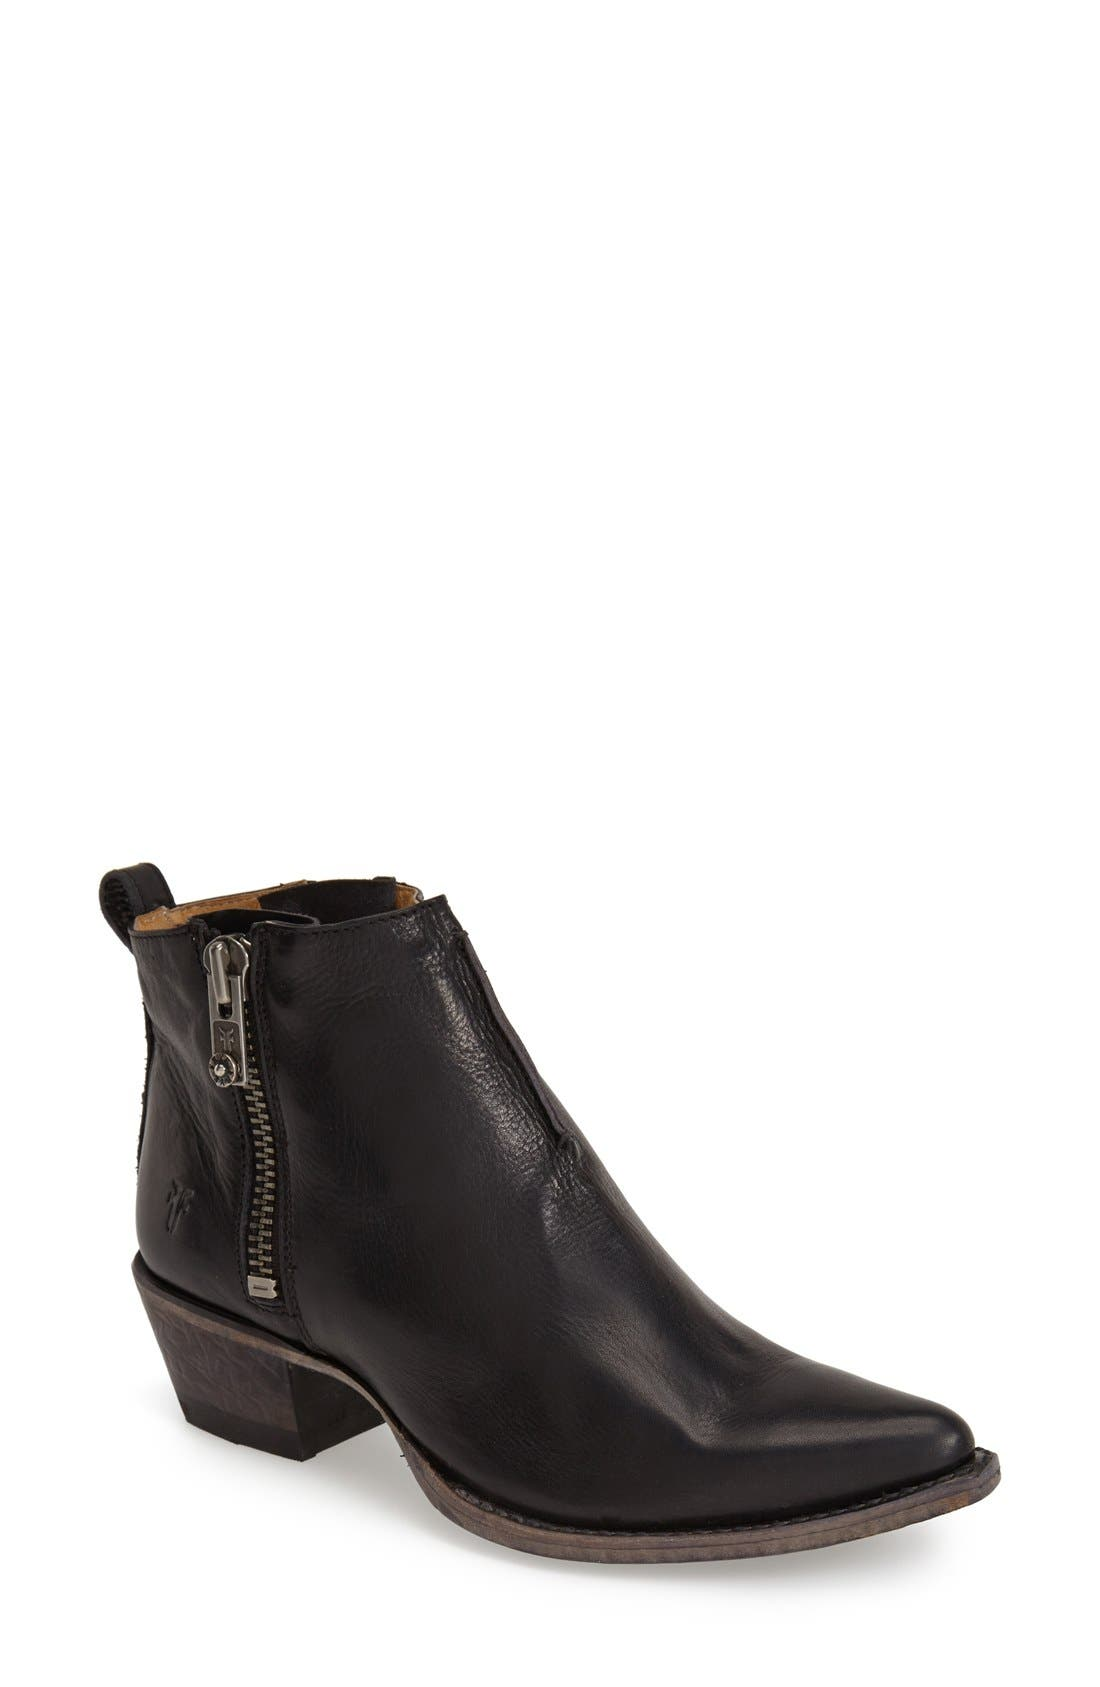 FRYE 'Sacha' Washed Leather Ankle Boot, Main, color, BLACK